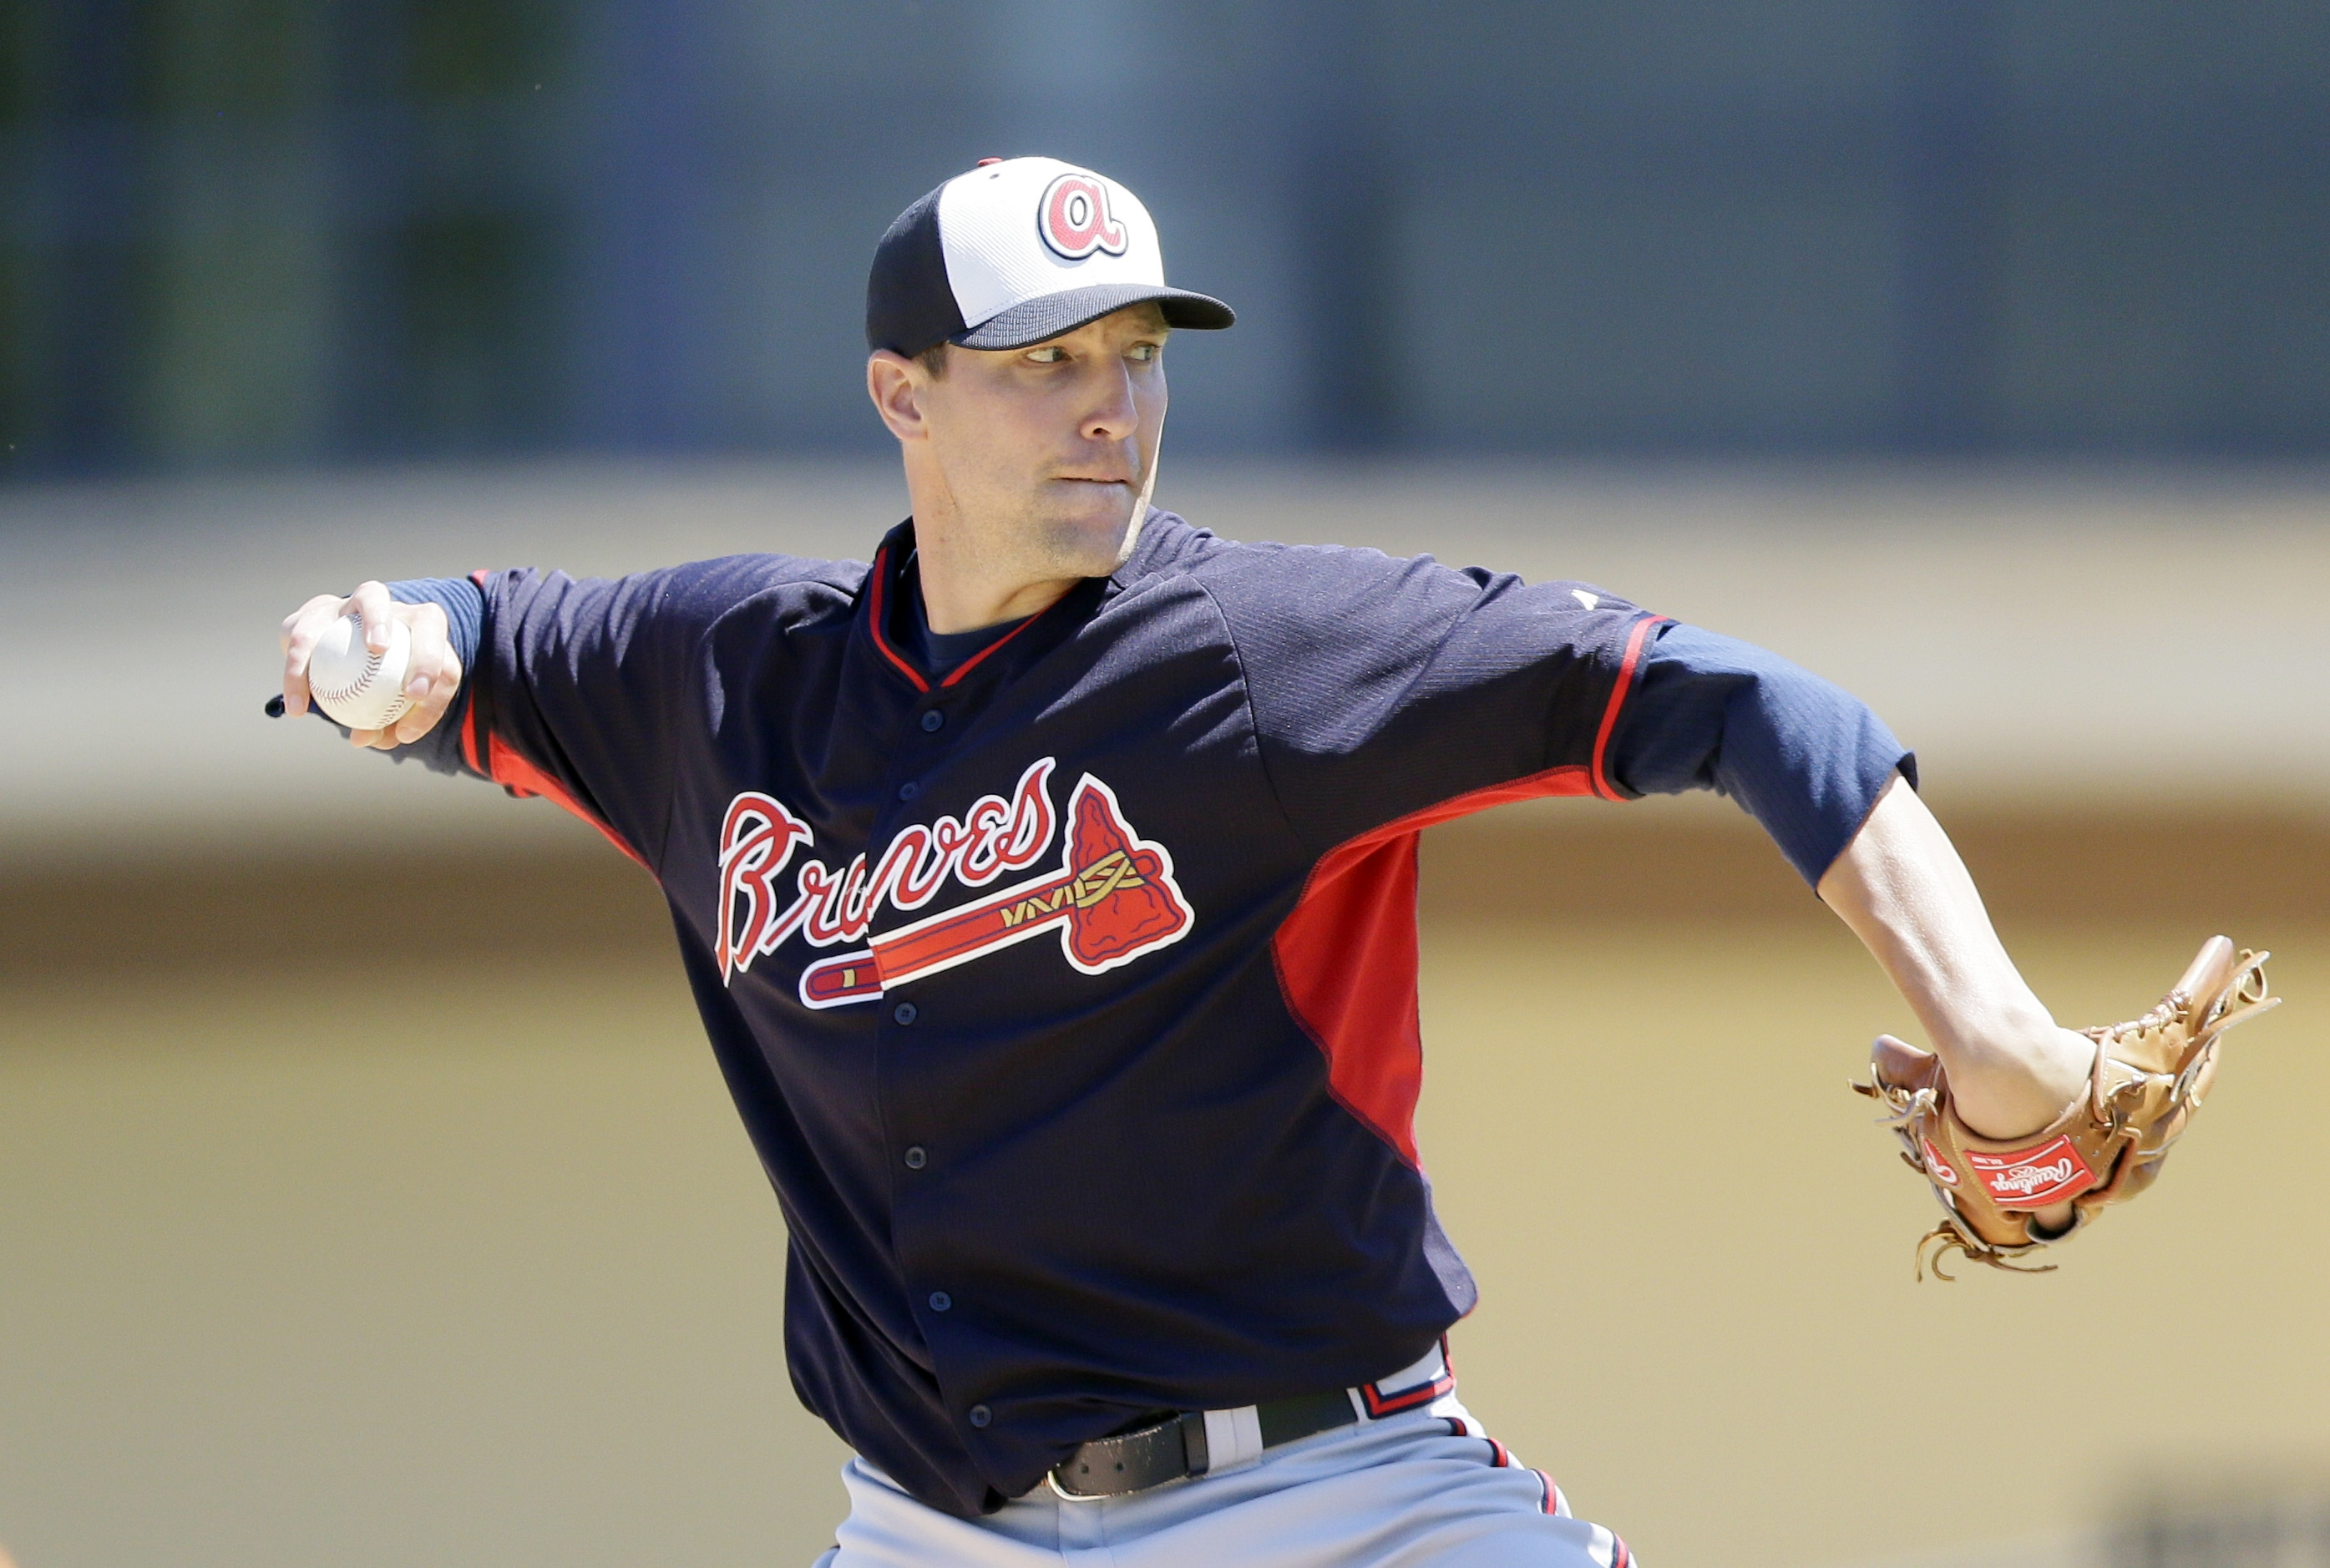 FILE - In this March 30, 2015, file photo, Atlanta Braves relief pitcher Jim Johnson throws during the fifth inning of a spring training exhibition baseball game against the Detroit Tigers in Lakeland, Fla. Reliever Jim Johnson is returning to the Atlanta